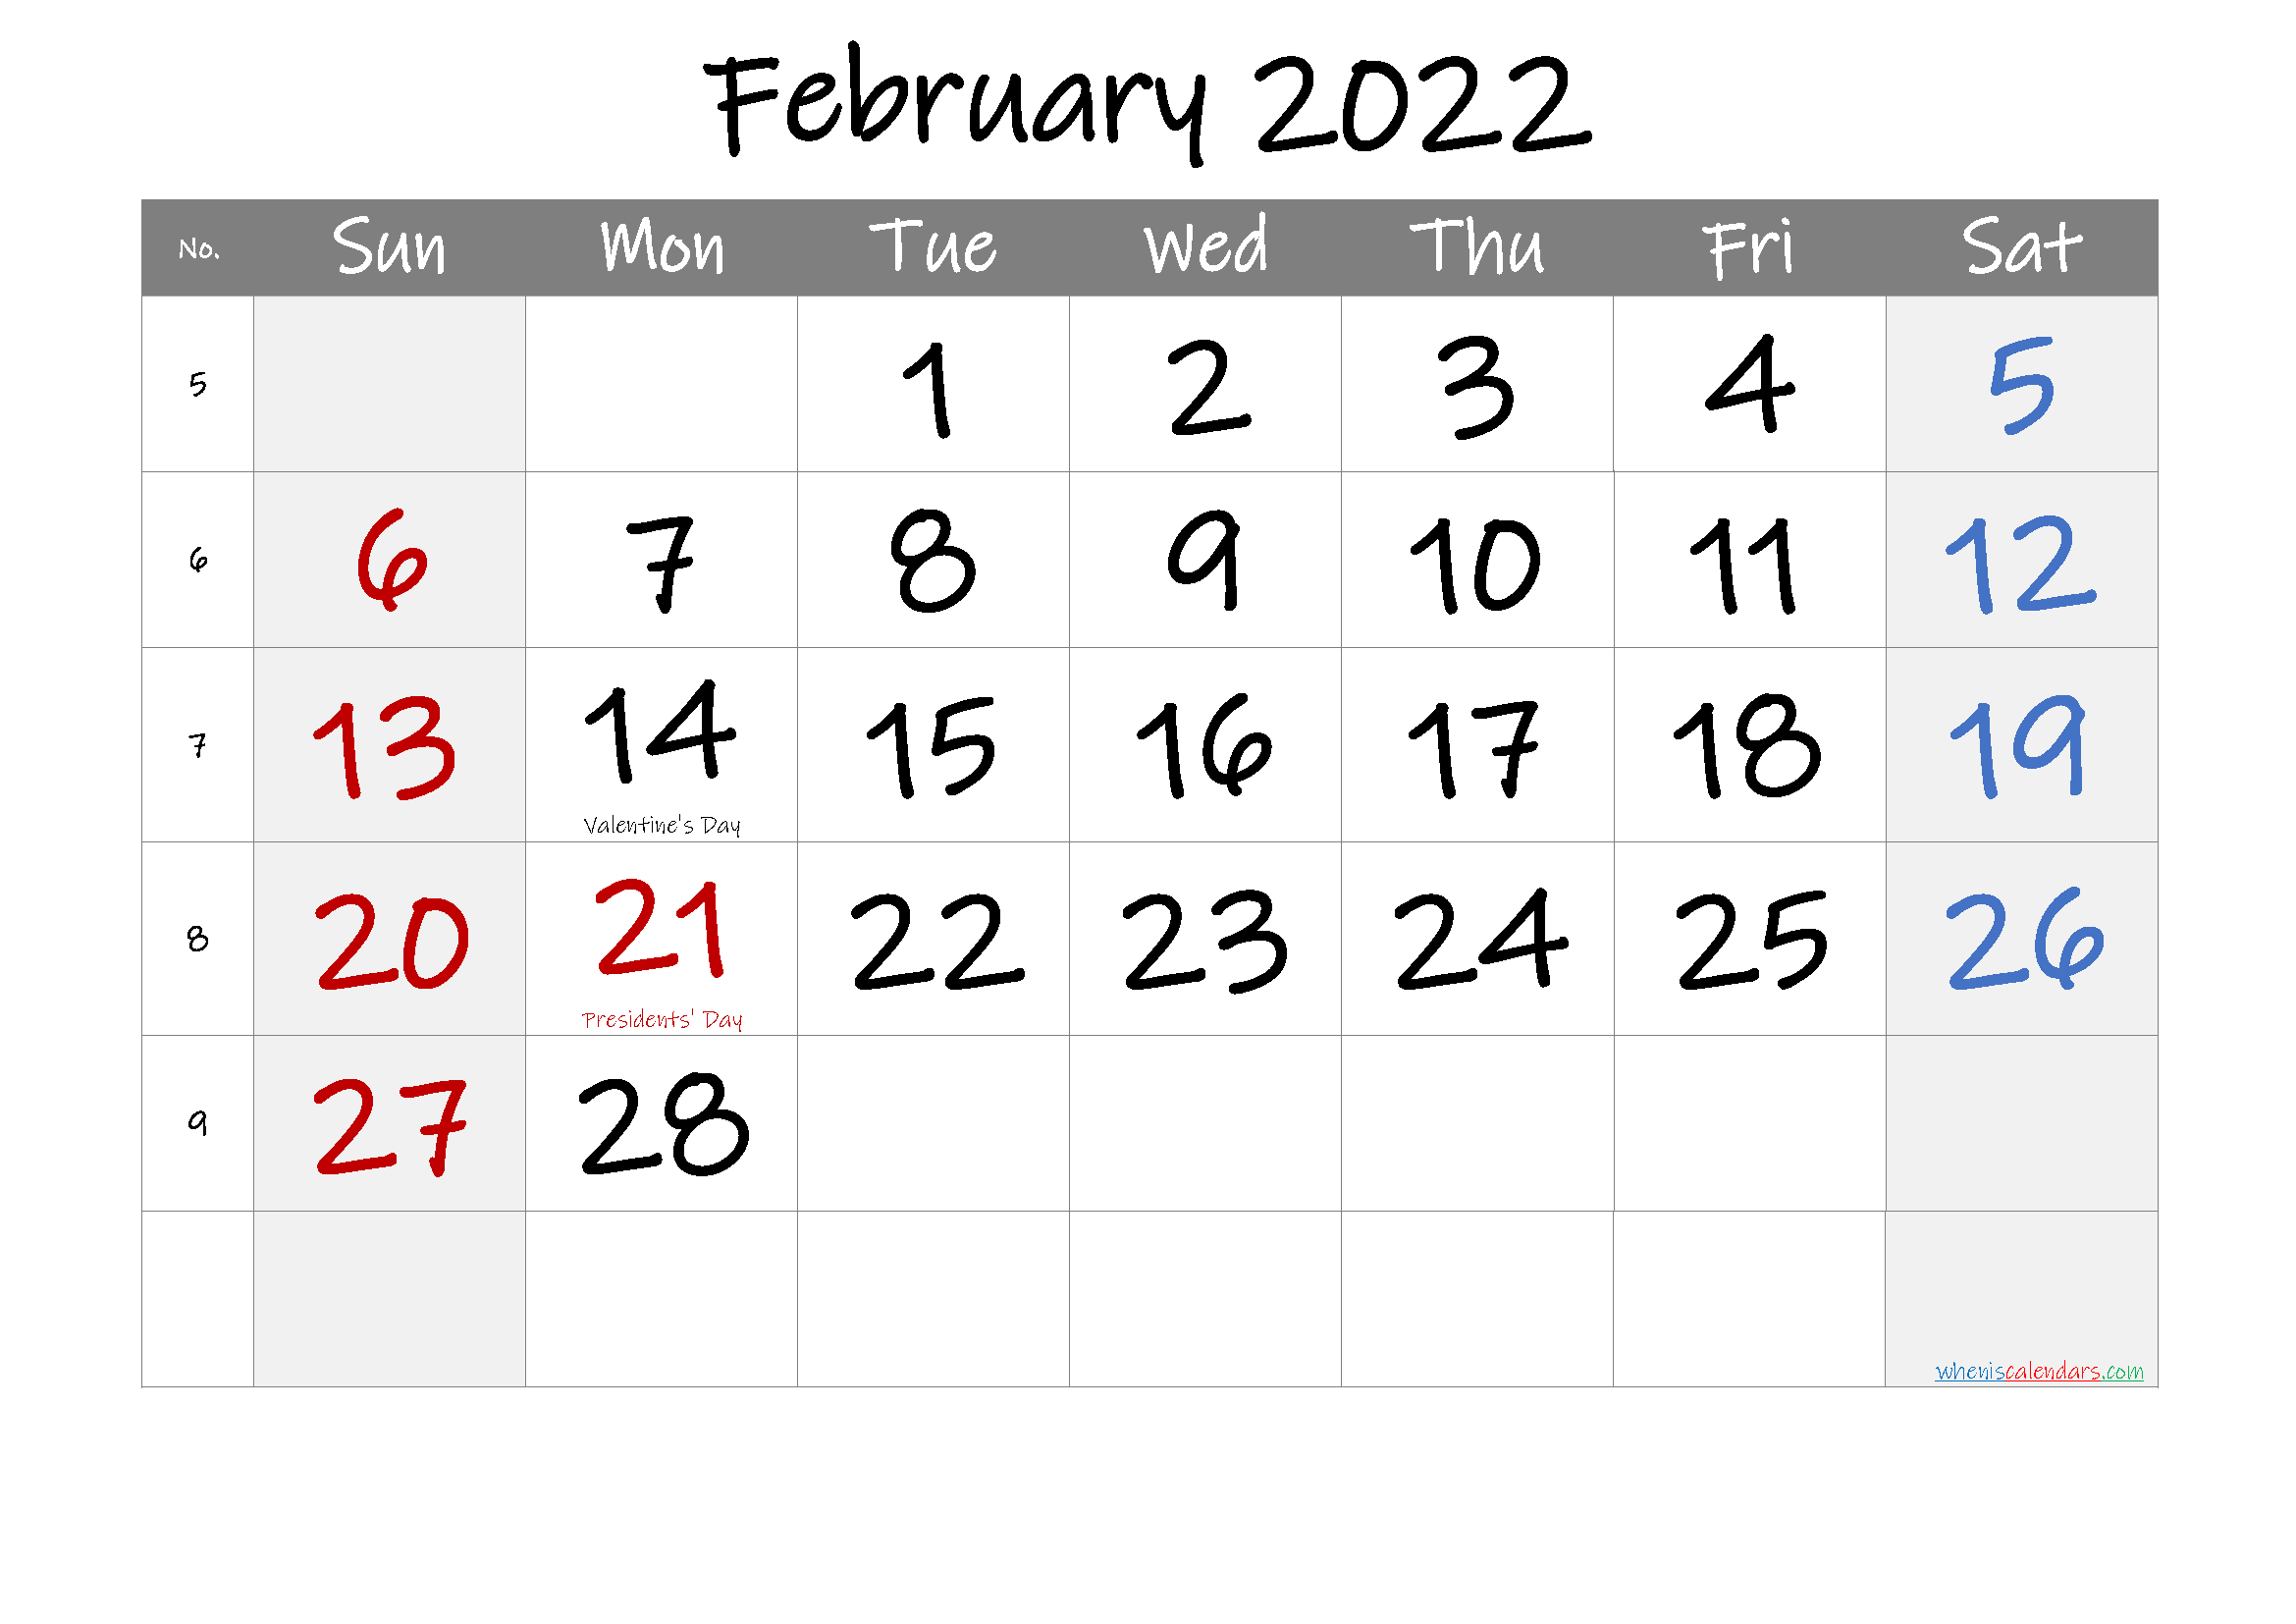 February 2022 Free Printable Calendar with Holidays